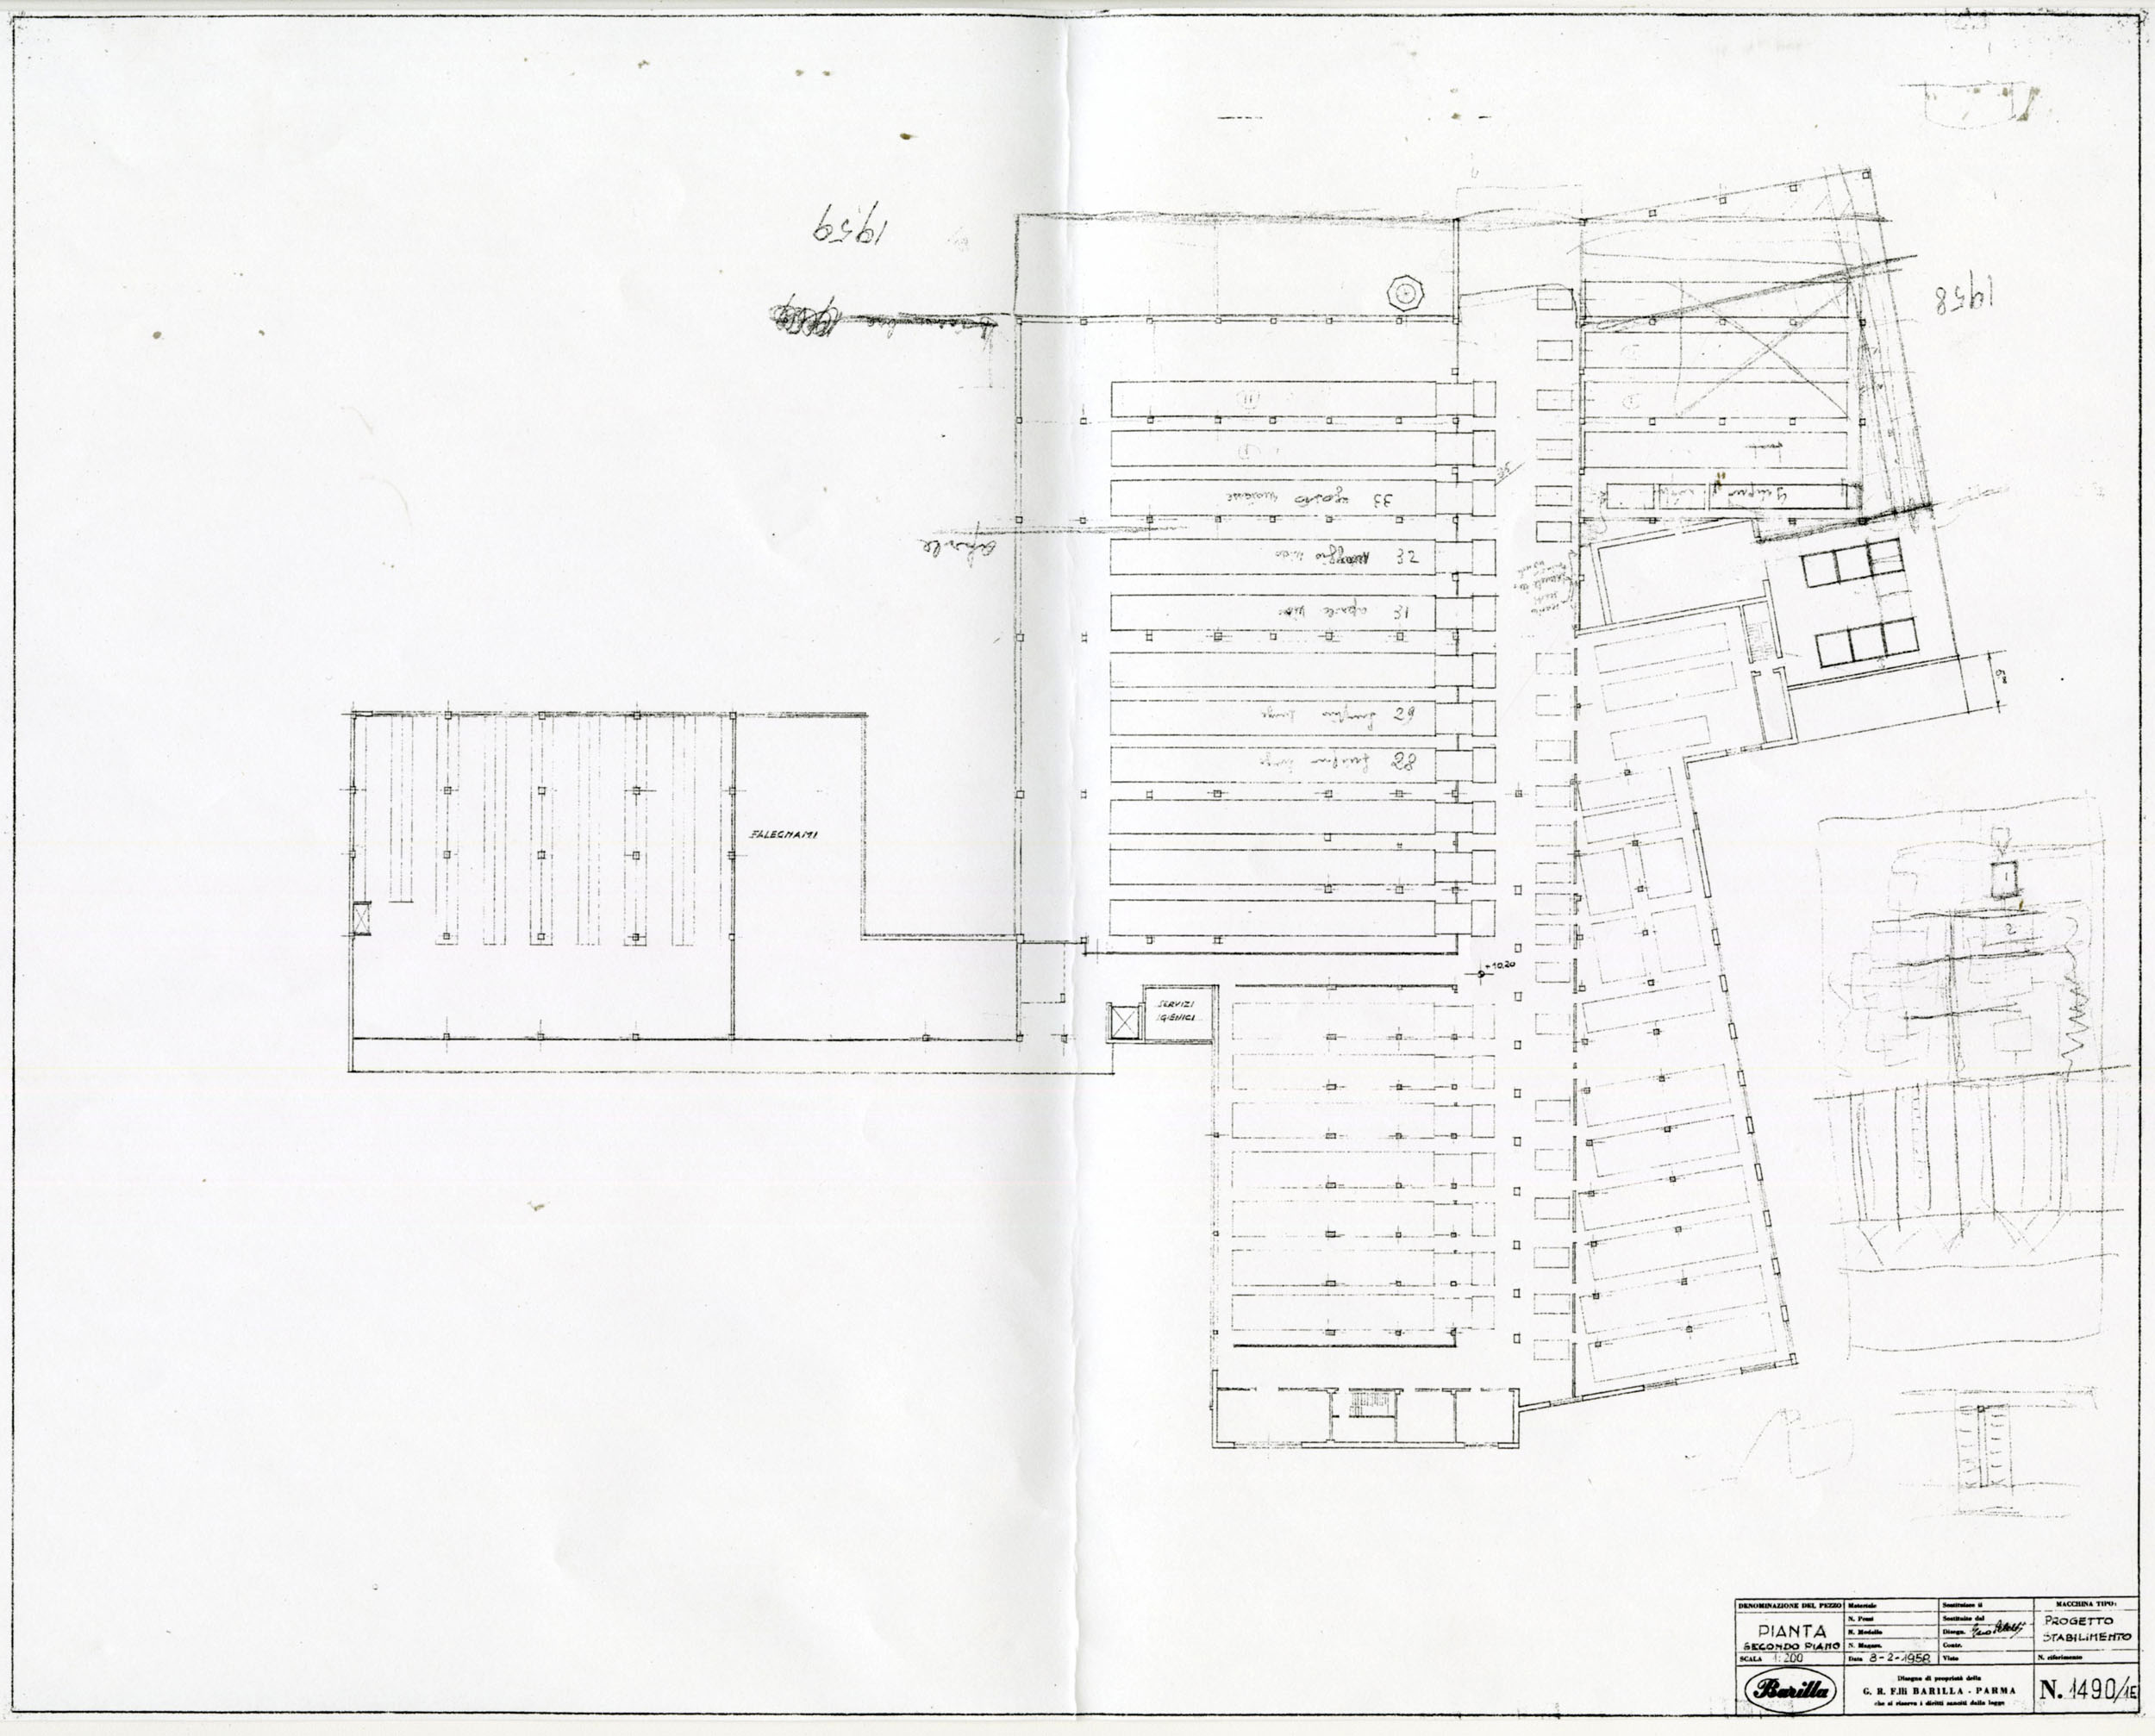 Barilla Technical Office, map of the second floor of the plant with the scheme of the production lines, 1958 [ASB, O, Plants].